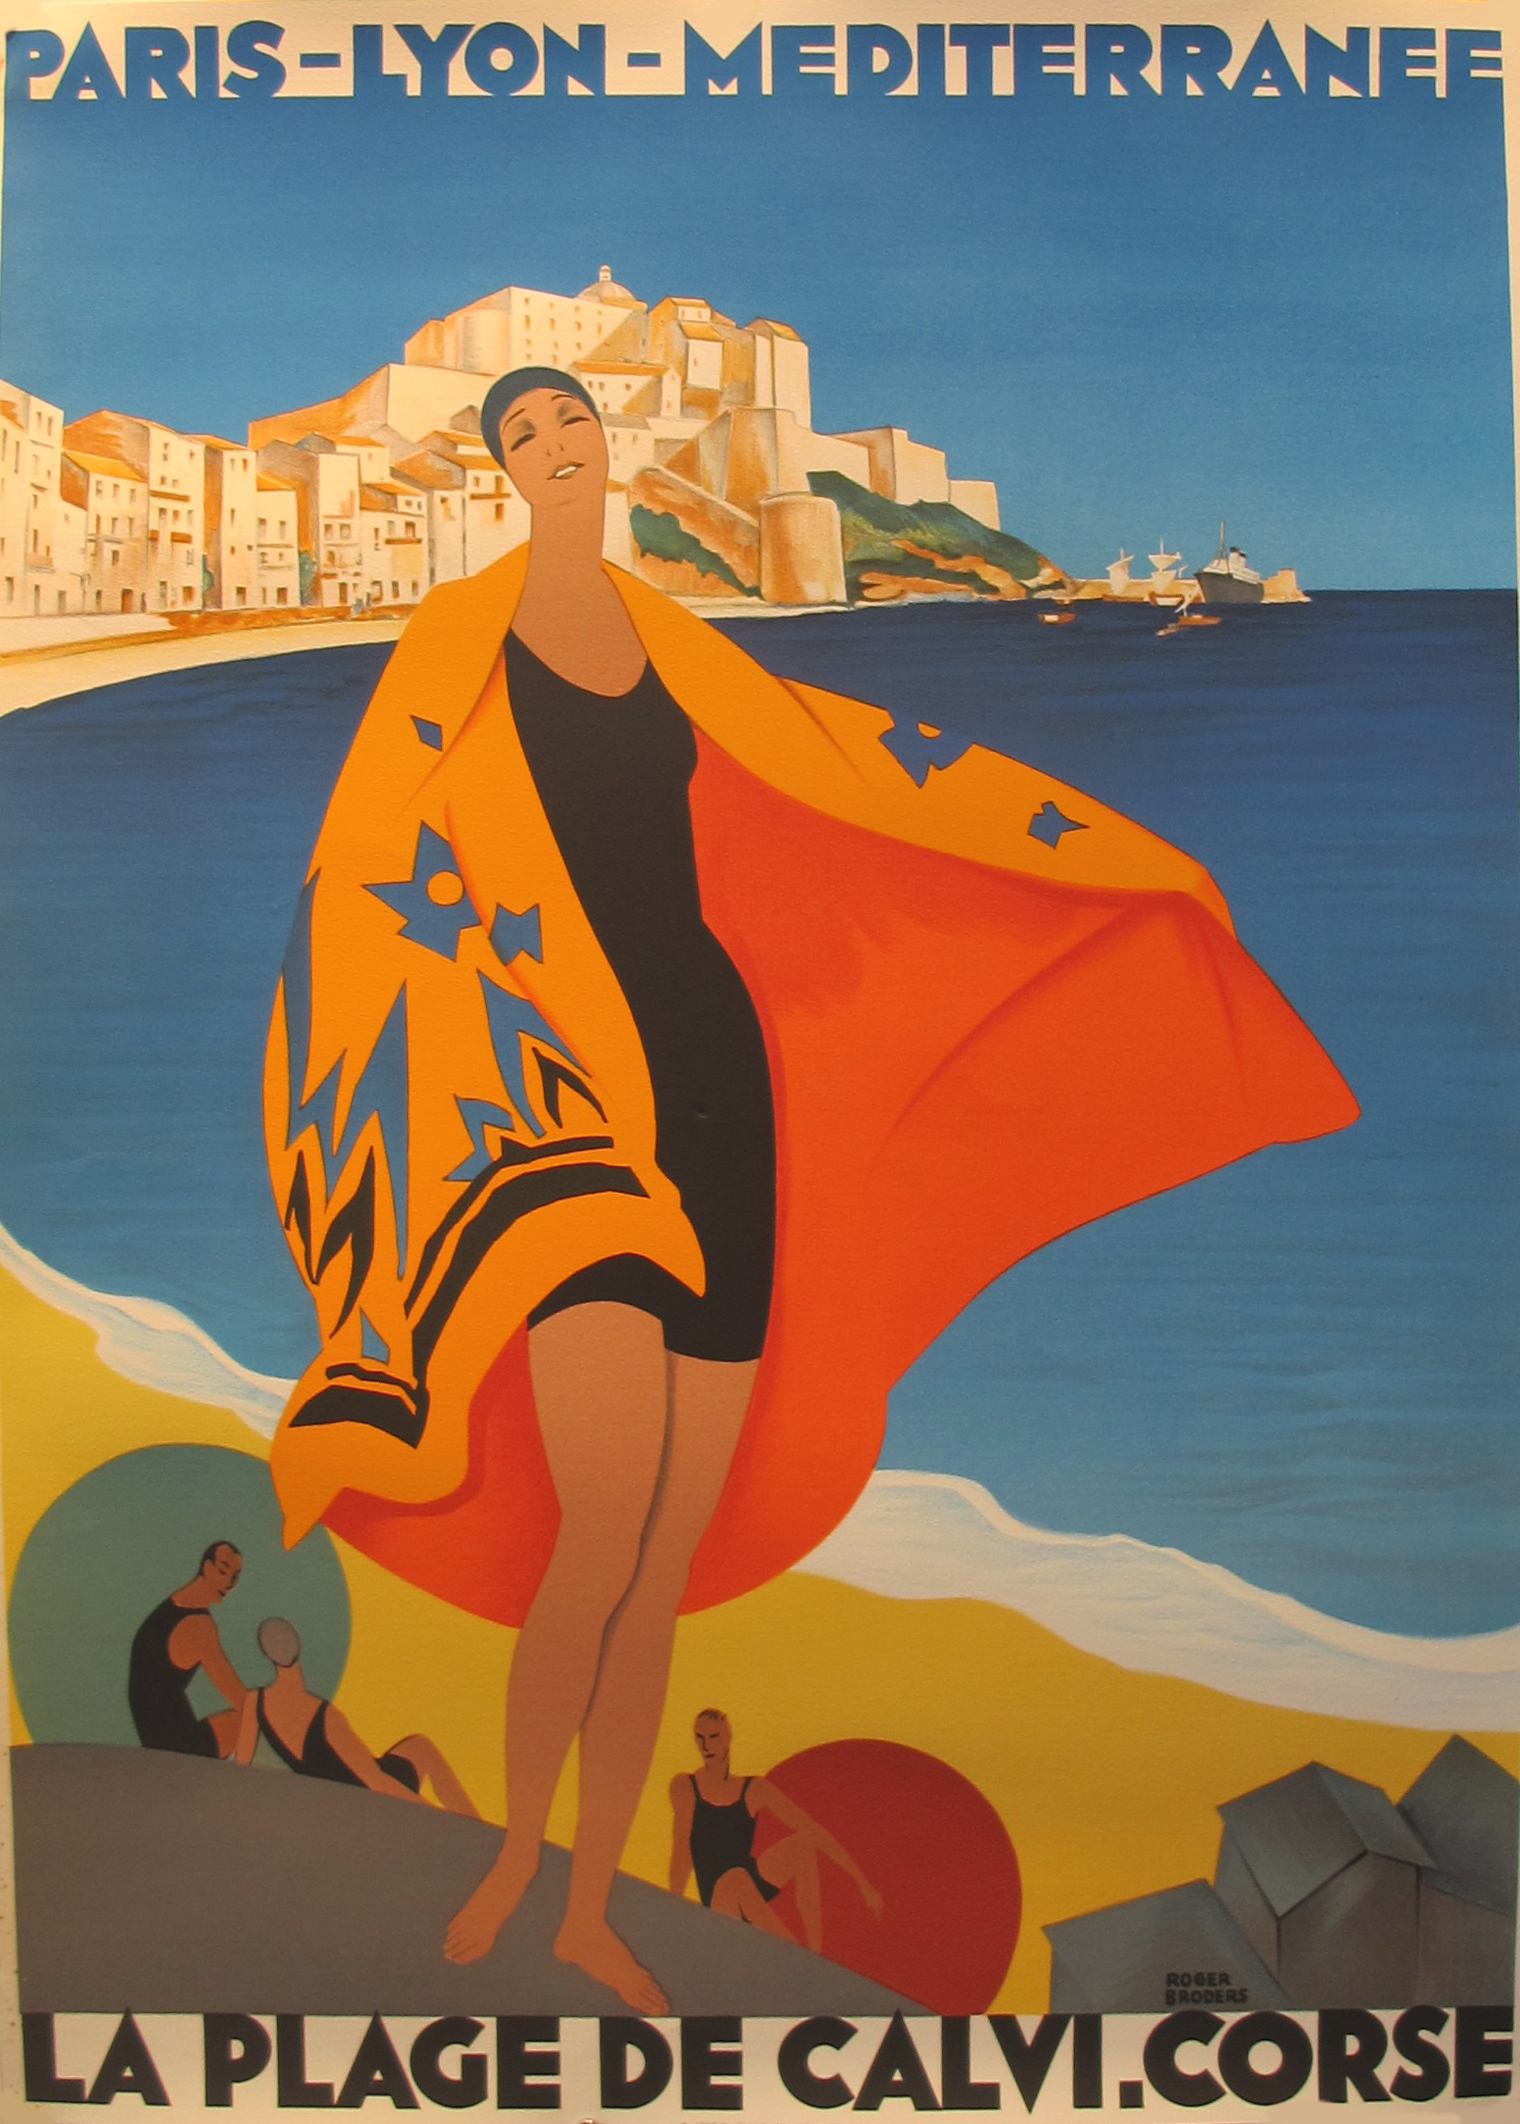 Plage De Calvi Corse Poster By Roger Broders Chairish